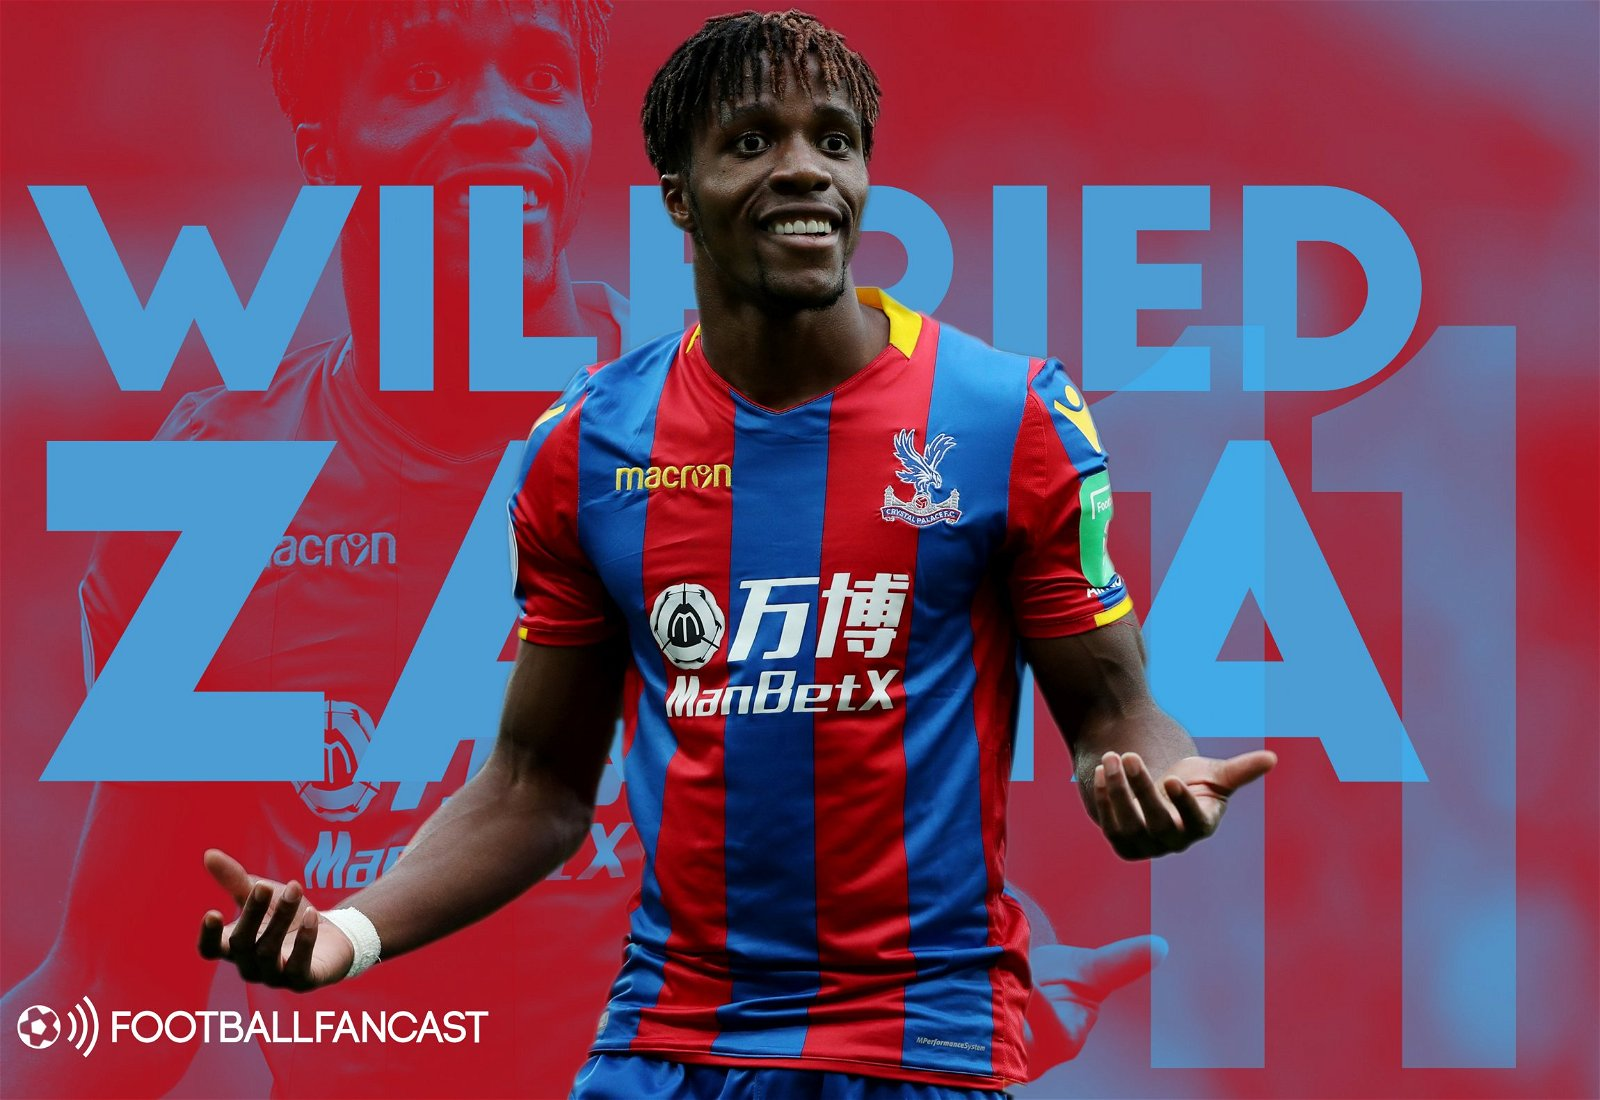 Player Zone: The uniqueness of Wilfried Zaha is on the Man United trajectory